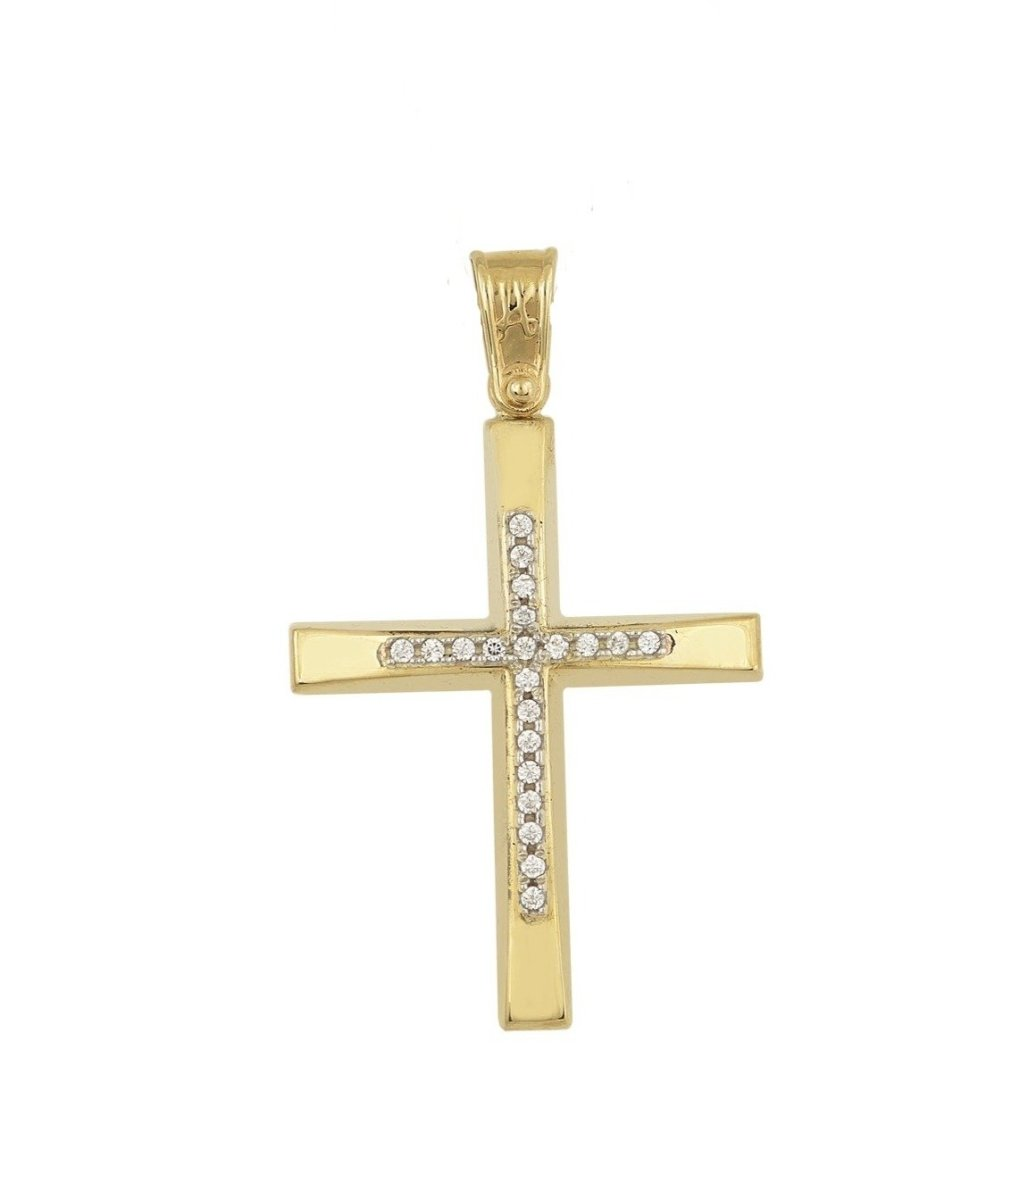 Cross STA4412 Baptism for Girl Gold K14 - Goldy Jewelry Store